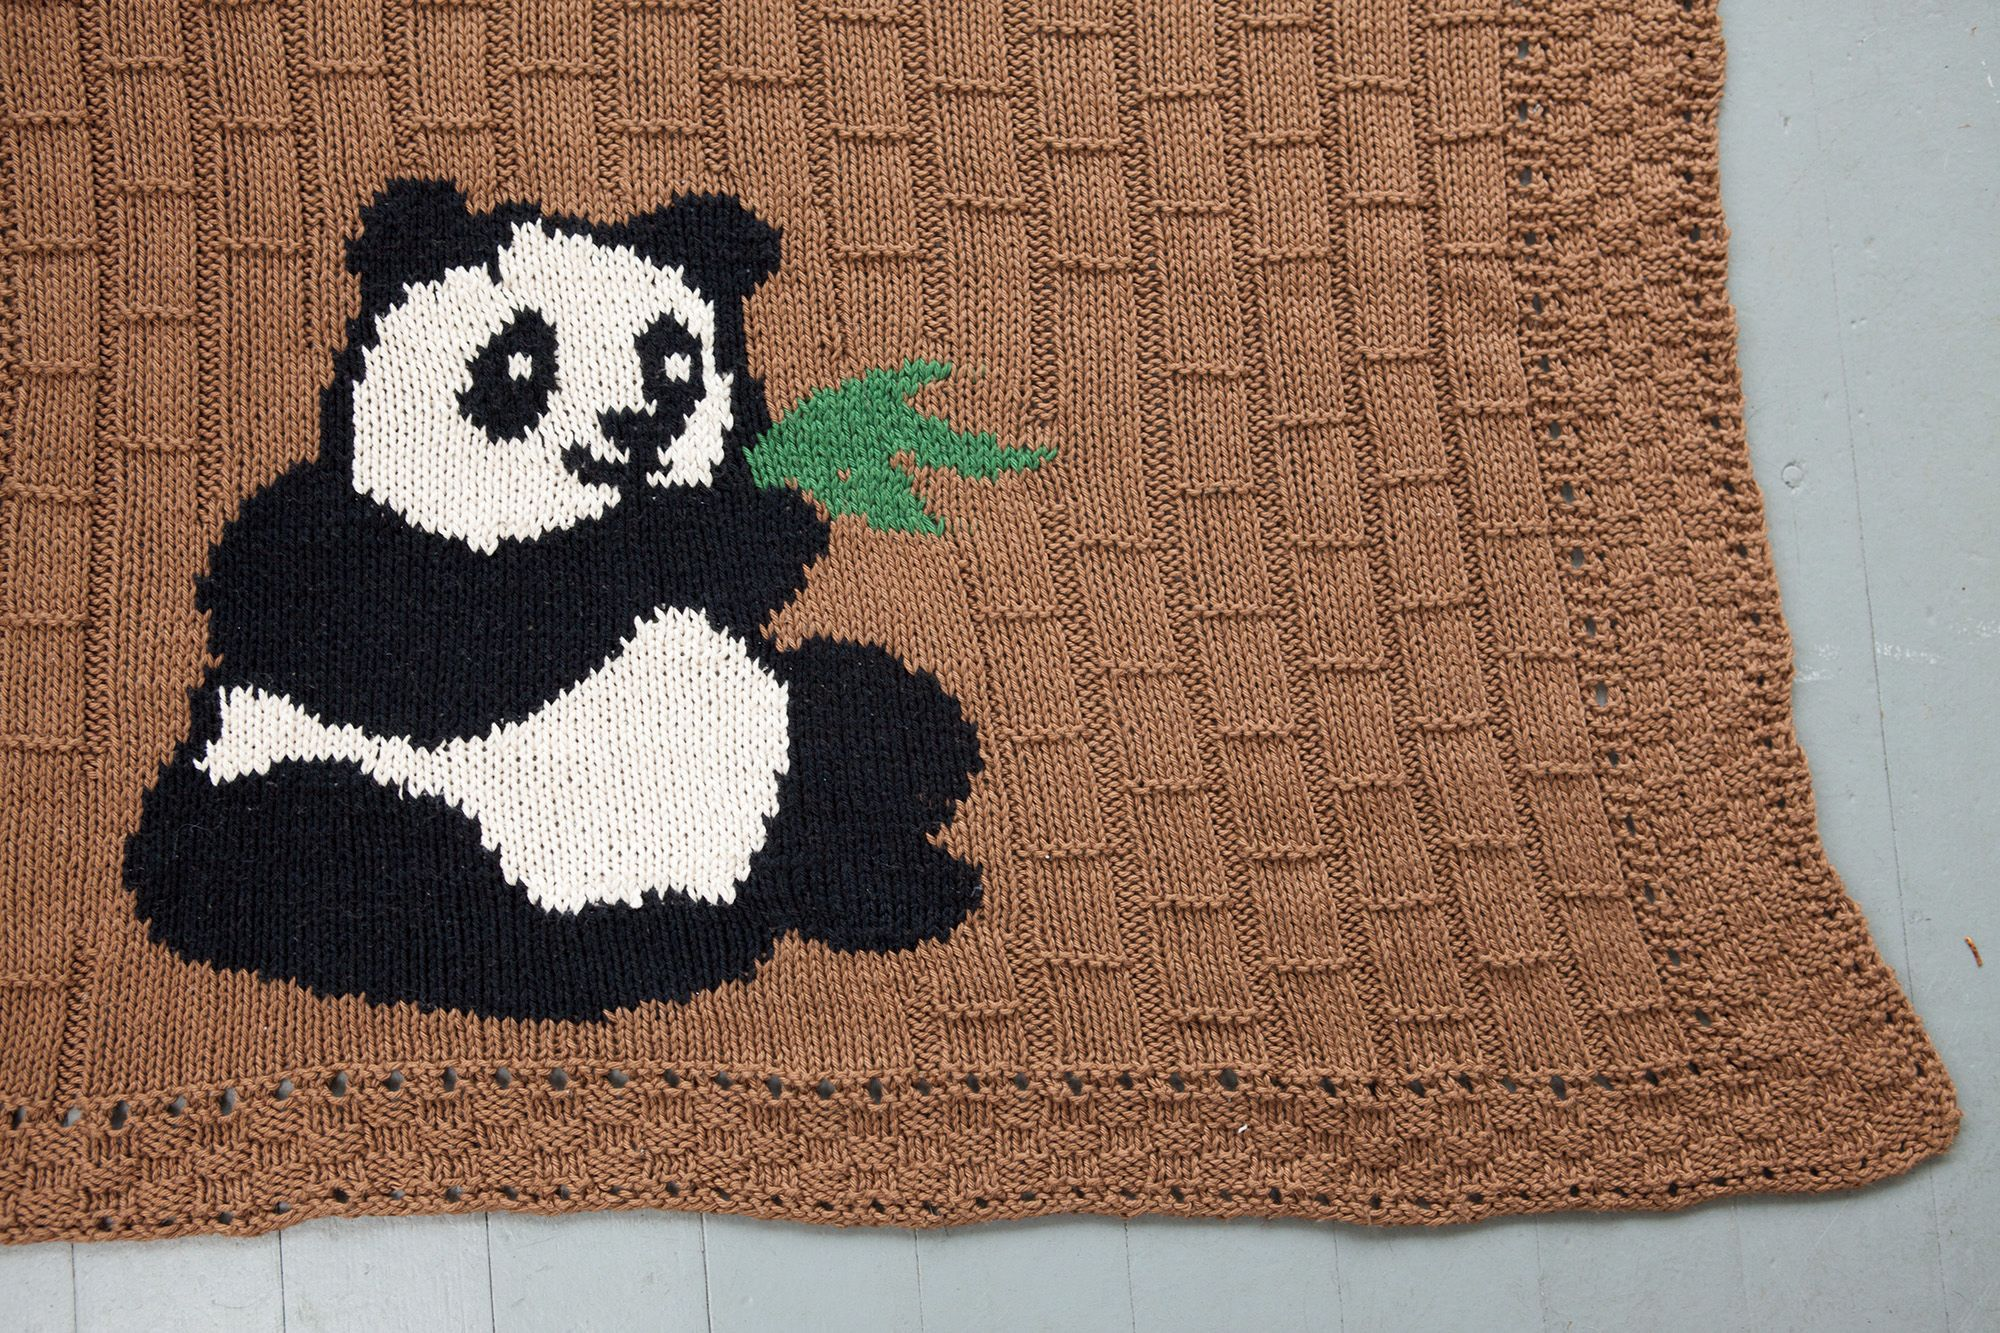 Among The Bamboo Baby Blanket Knitting Patterns And